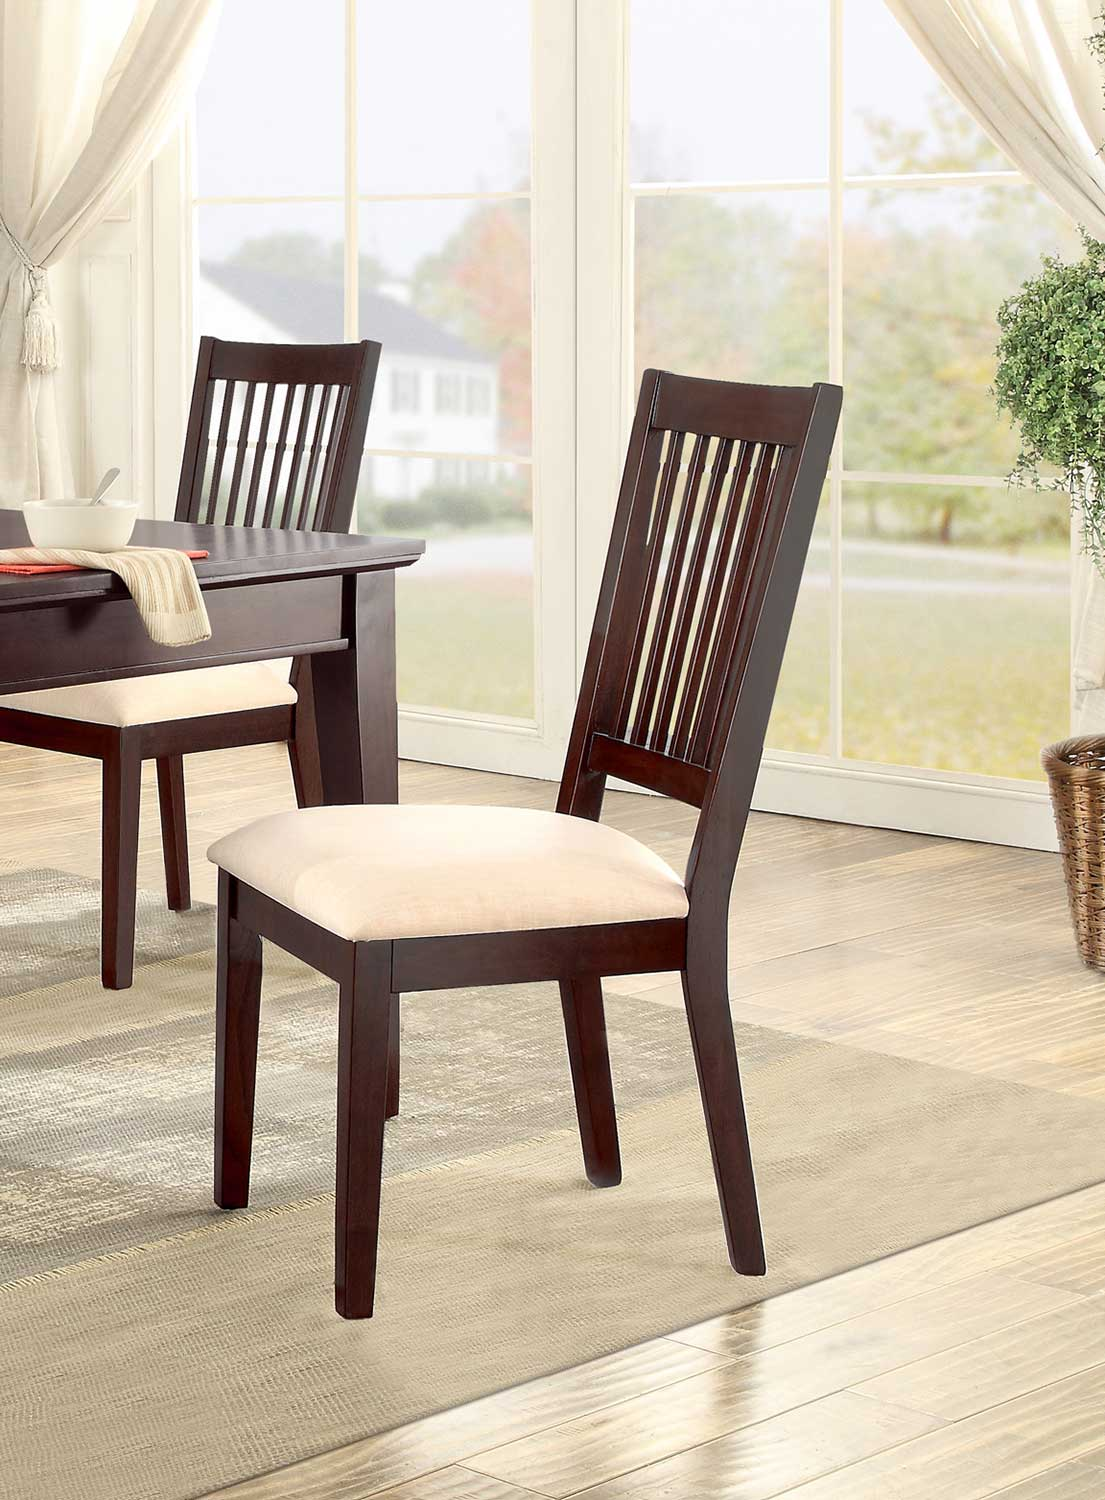 Homelegance Timber Forge Side Chair - Cherry